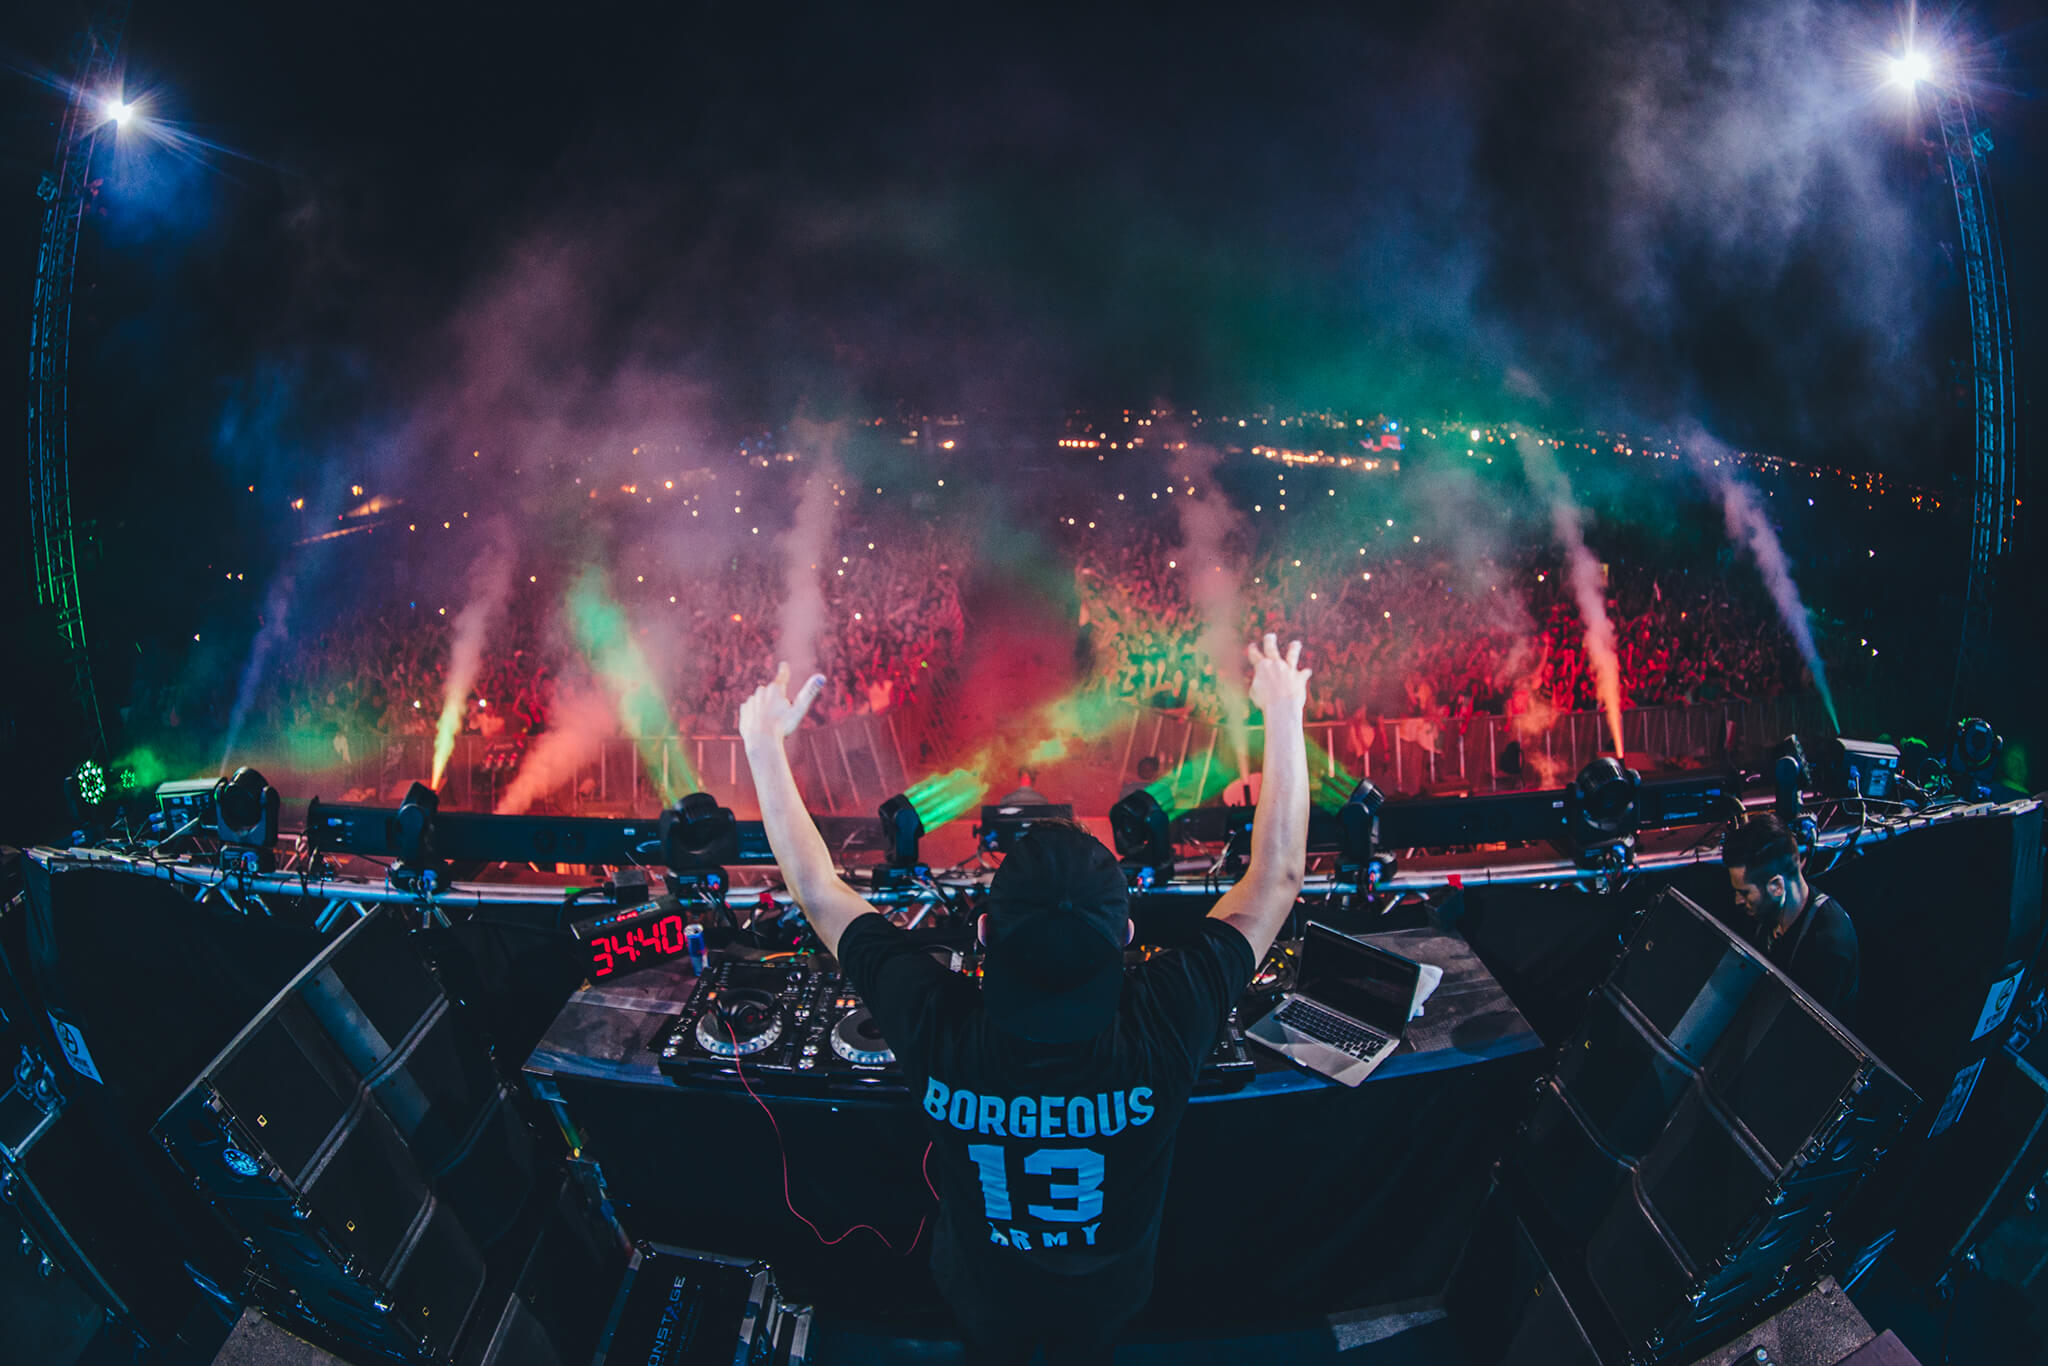 Borgeous performing at Sun City Music Festival 2014